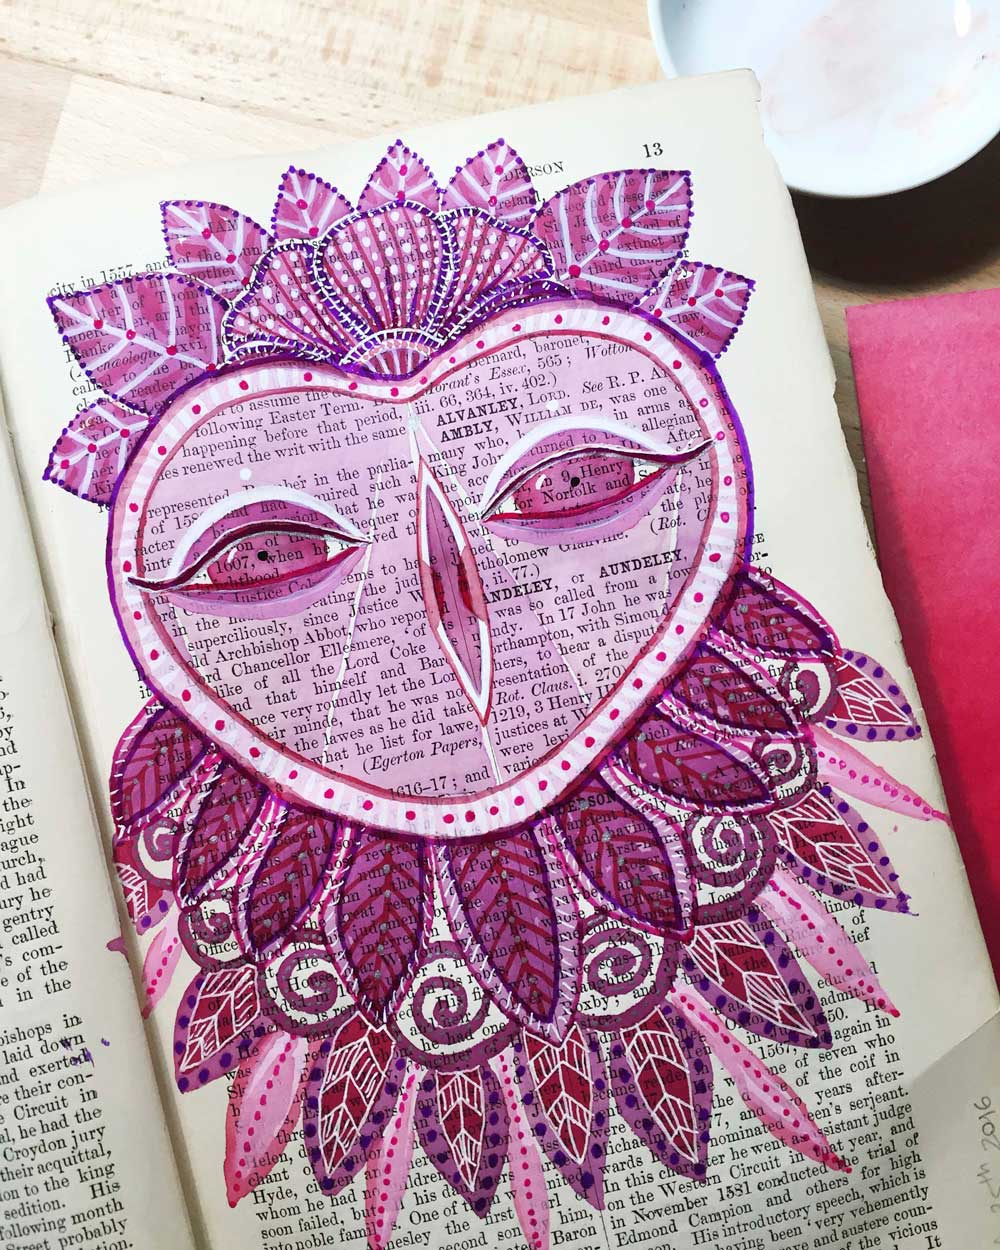 rose-buds-book-page-painting-eve-devore-9.jpg